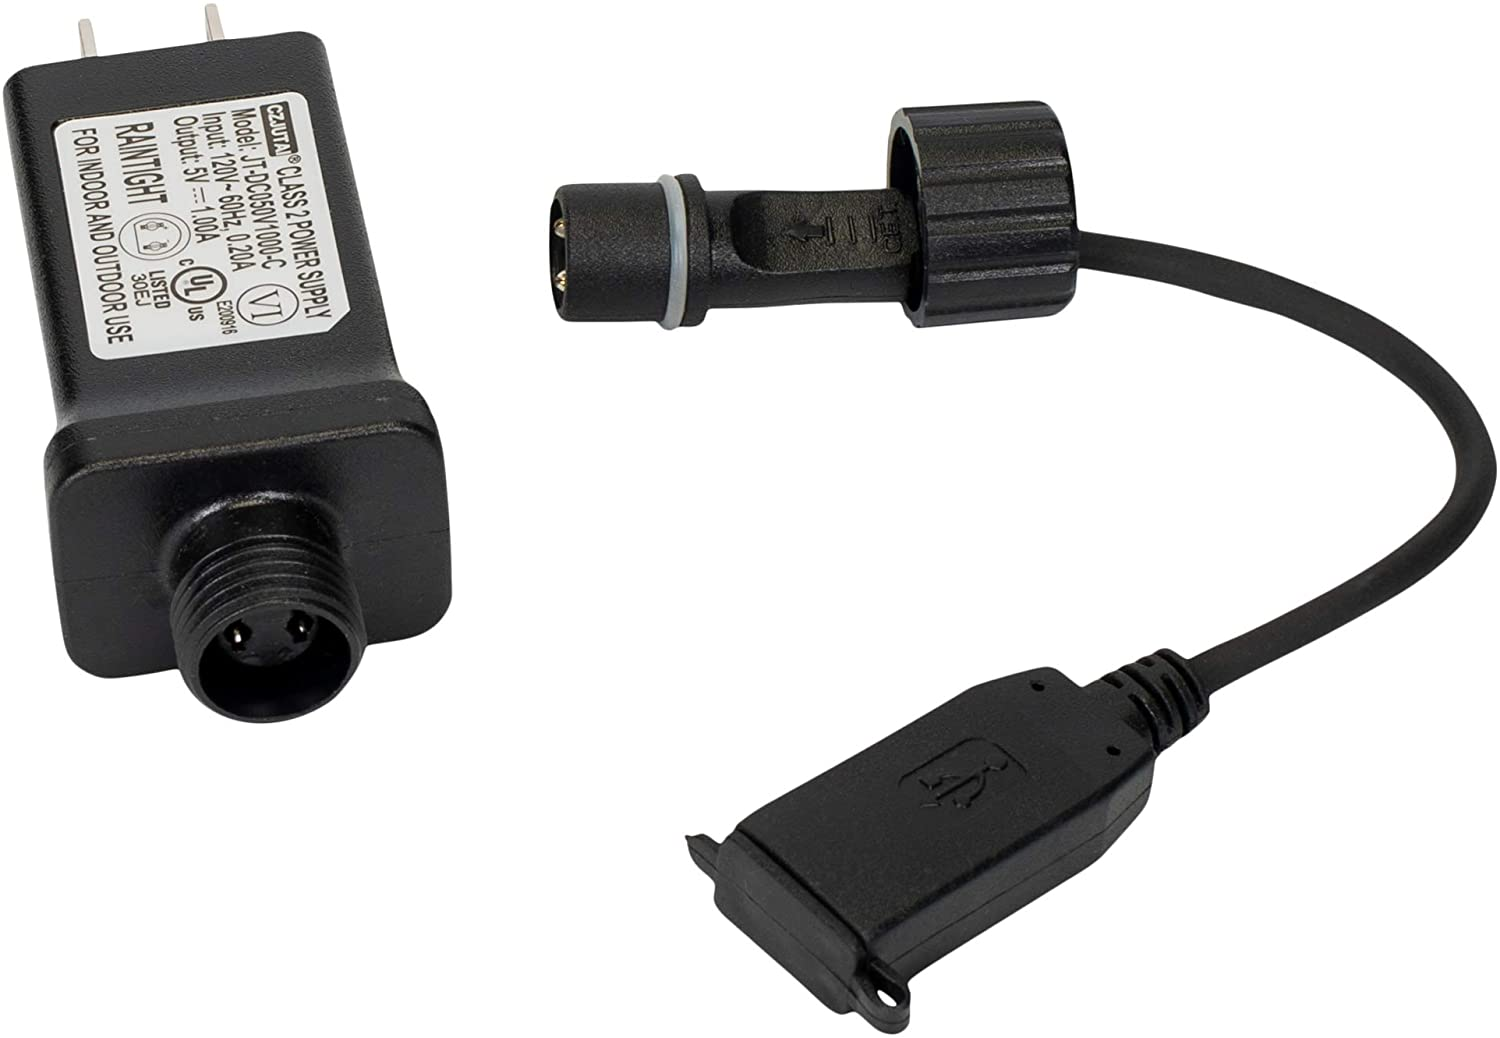 Roman USB UL Plug Adaptor Indoor/Outdoor IP44 5V